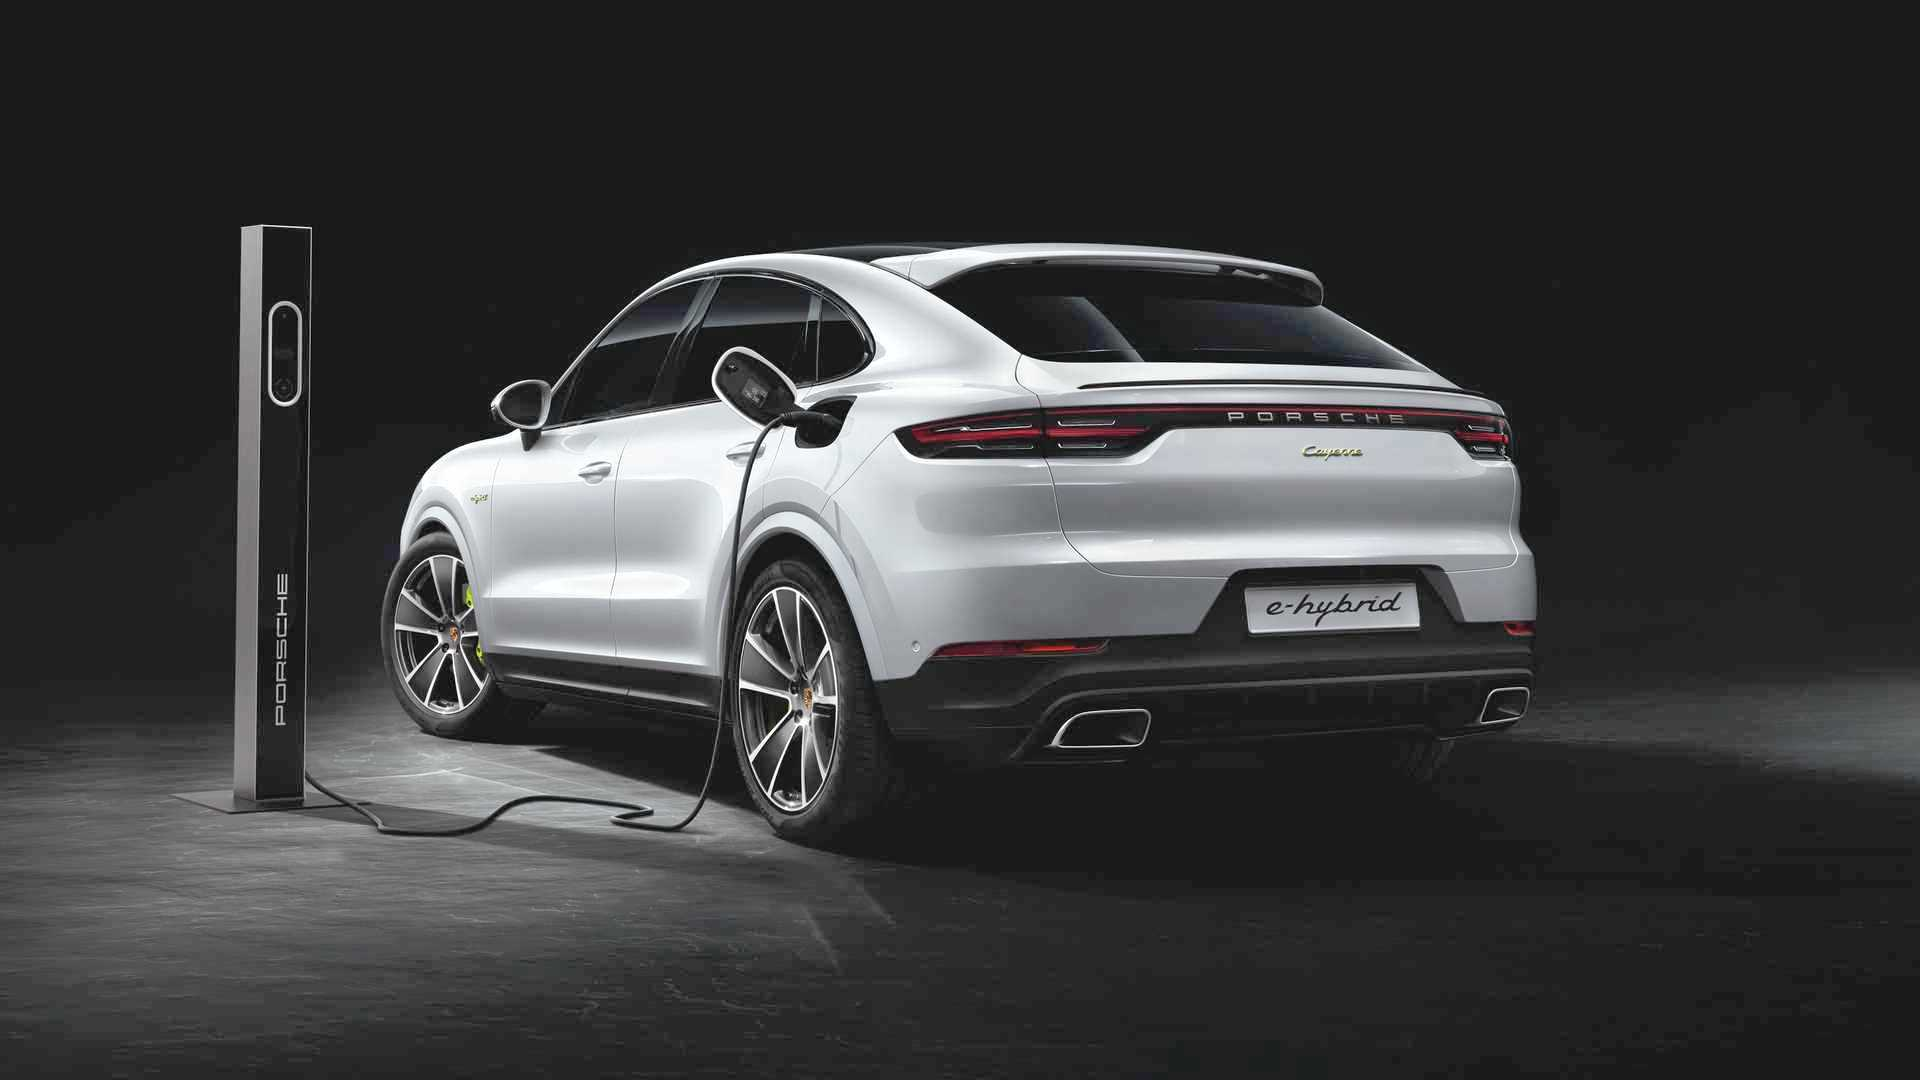 2020-porsche-cayenne-turbo-s-e-hybrid-coupe-turbo-s-e-hybrid-and-coupe-e-hybrid